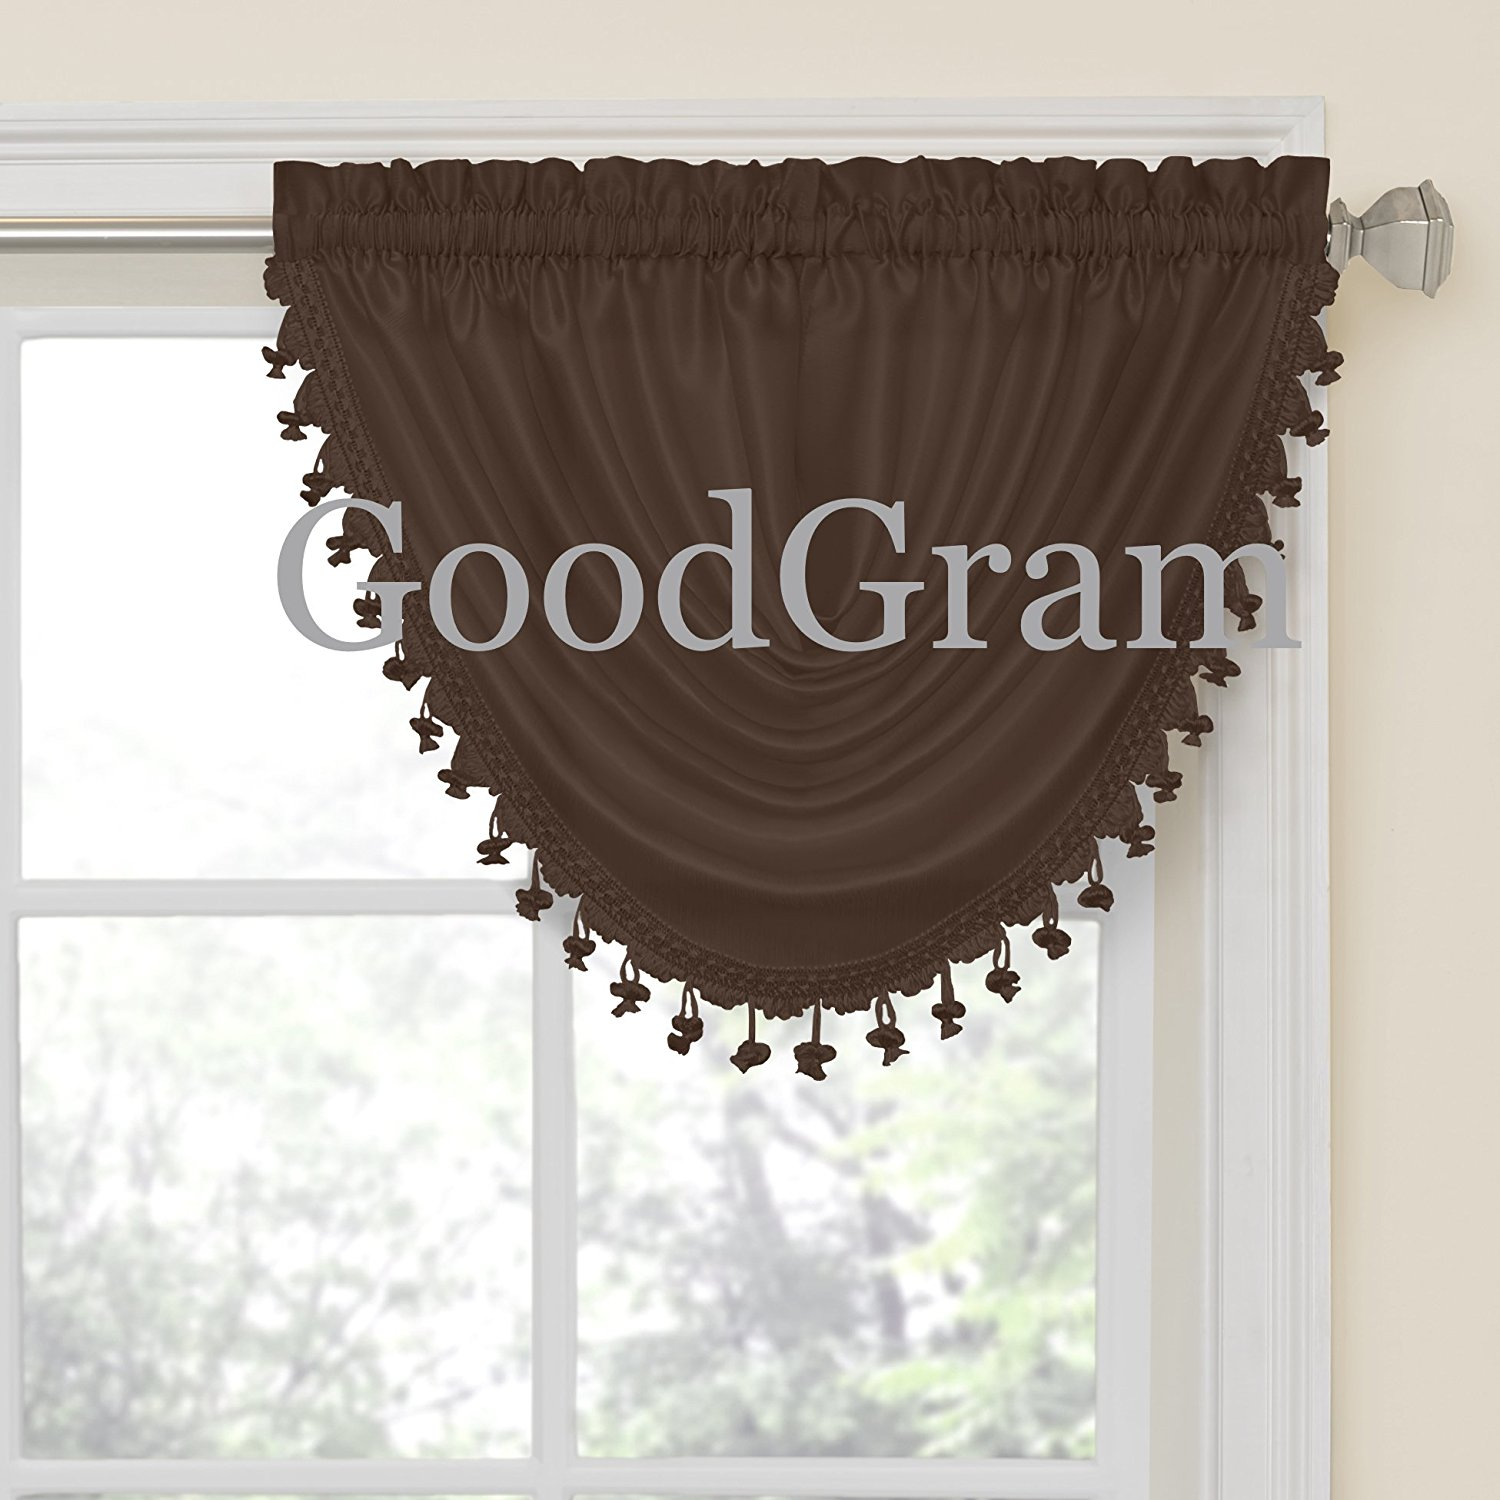 GoodGram Hyatt Ultra Luxurious Faux Silk Window Valance Treatments - Coffee Bean